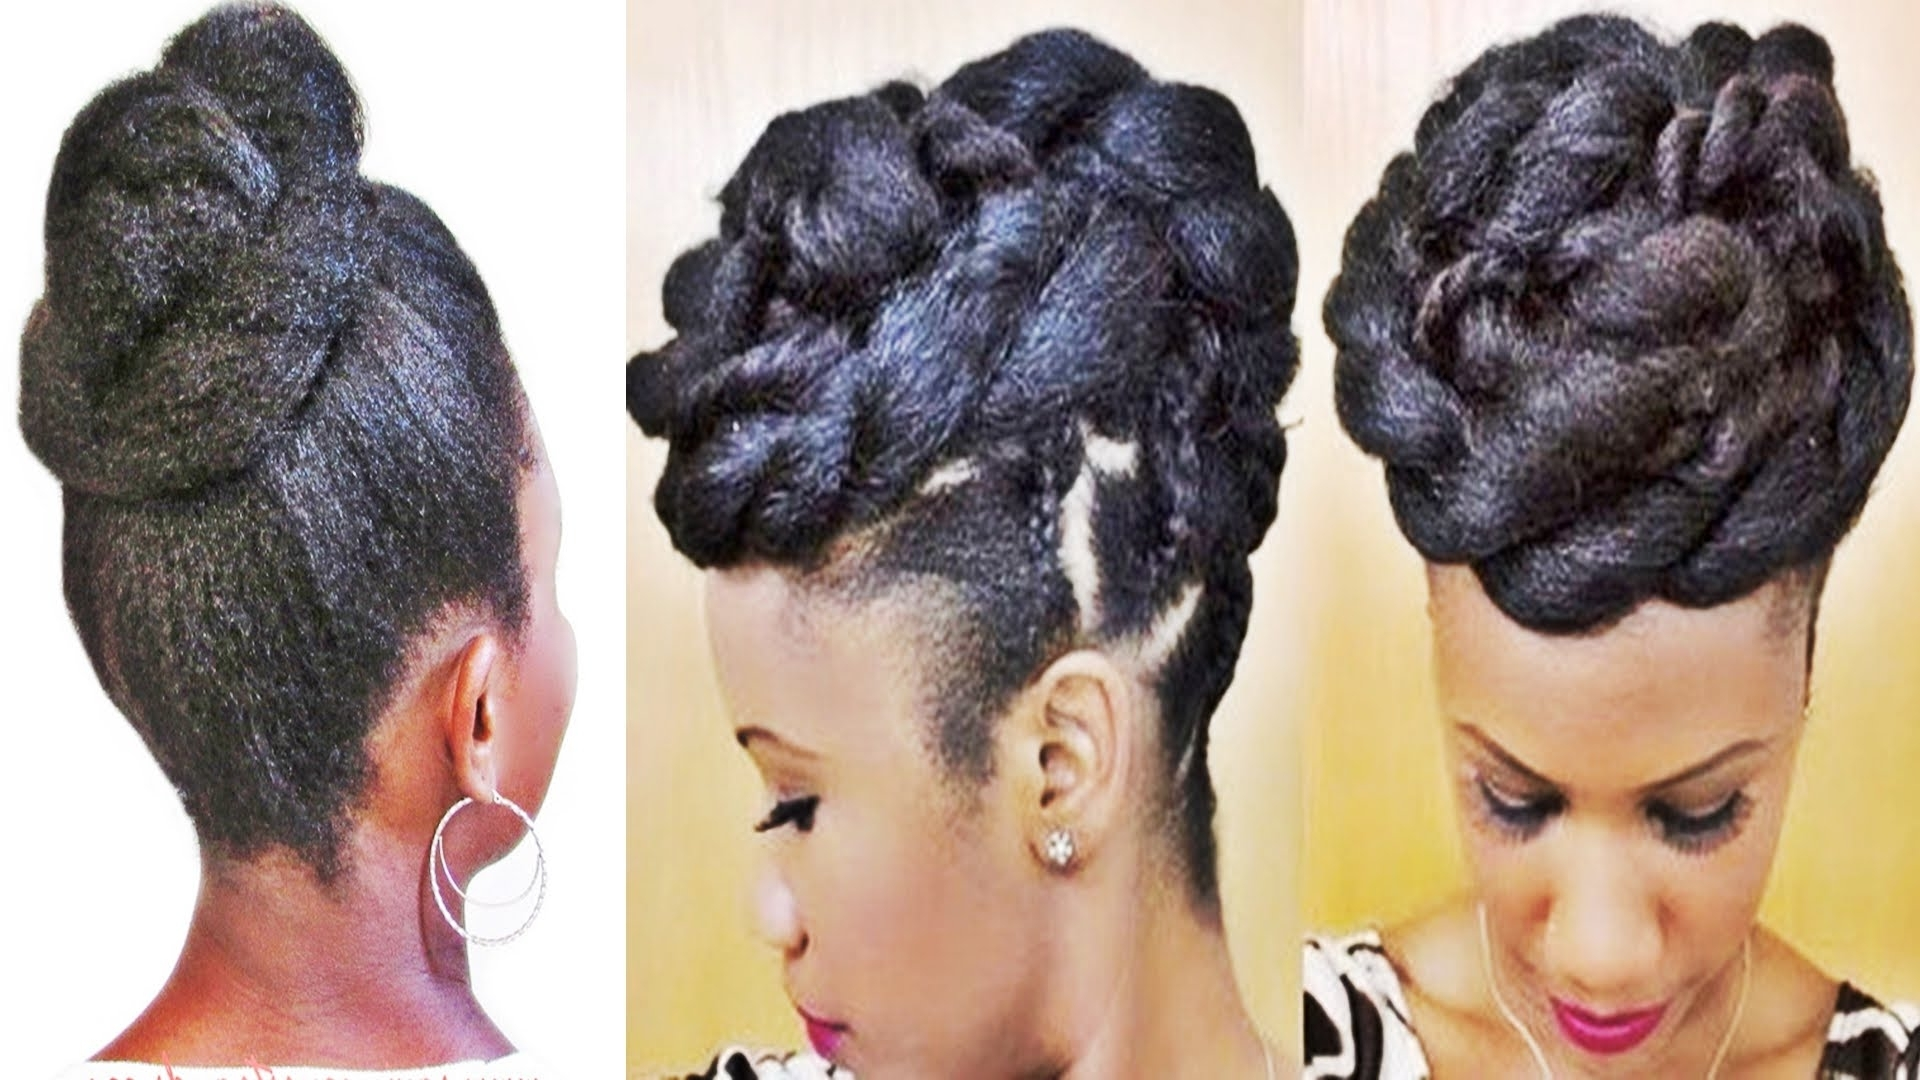 Braids And Twists Updo Hairstyle For Black Women – Youtube Intended For Braided Updo Hairstyles For Black Hair (View 2 of 15)